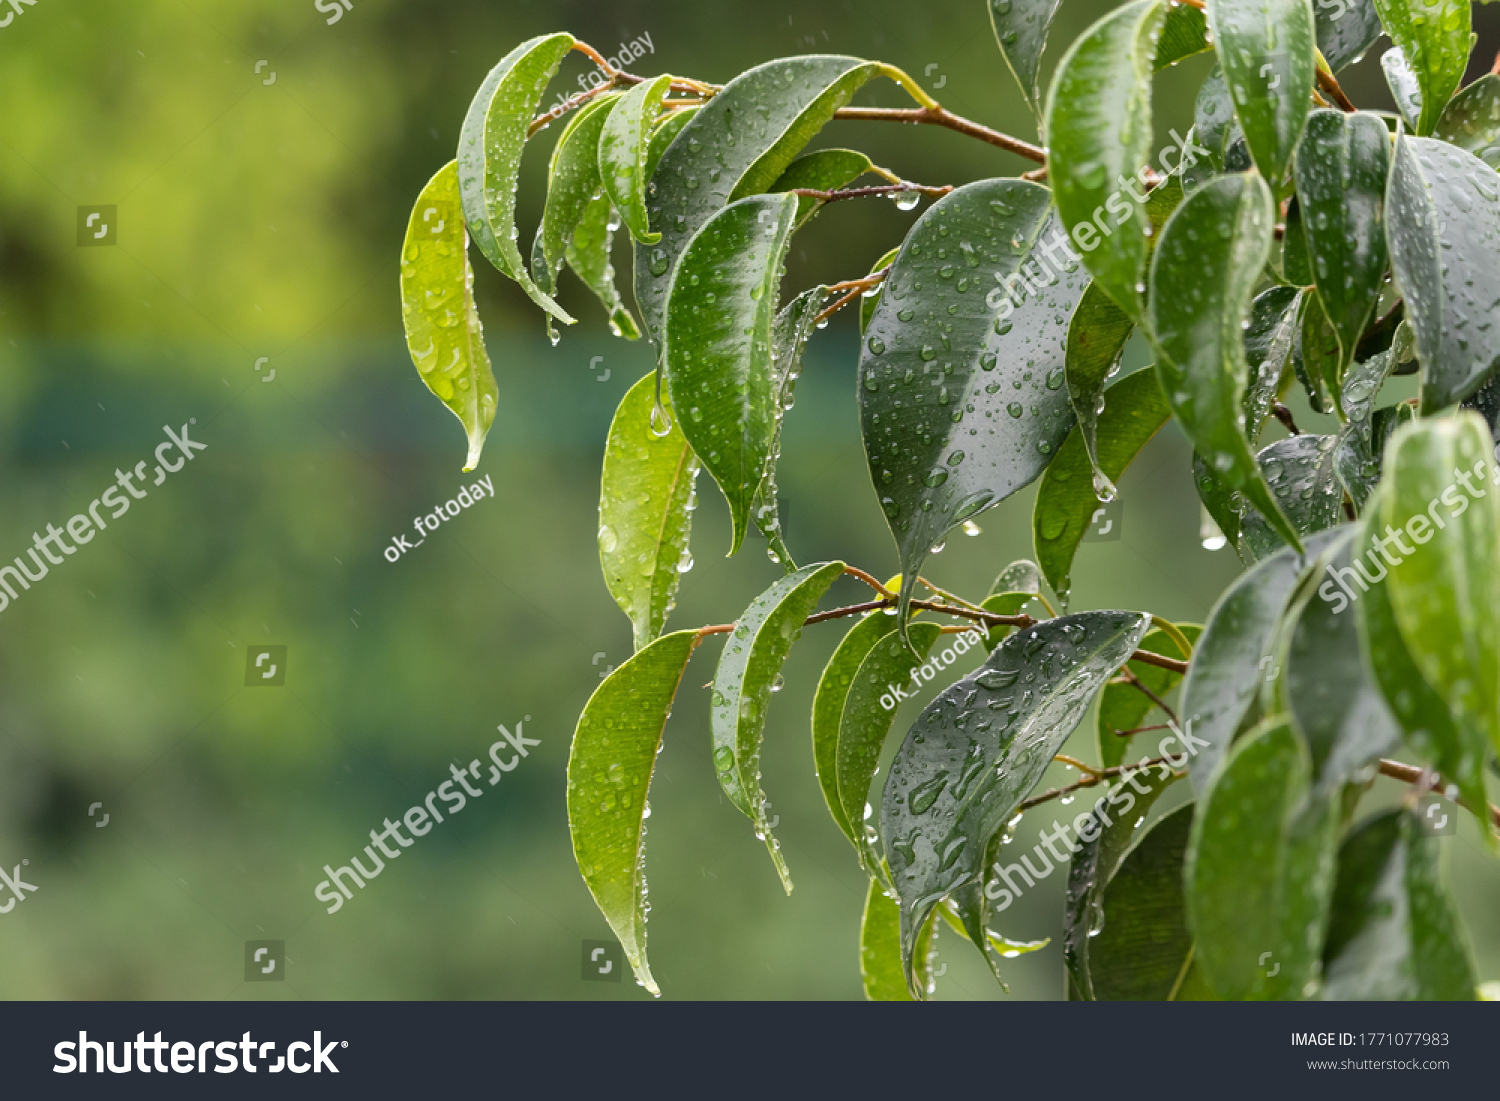 stock-photo-the-freshness-of-the-rain-sm